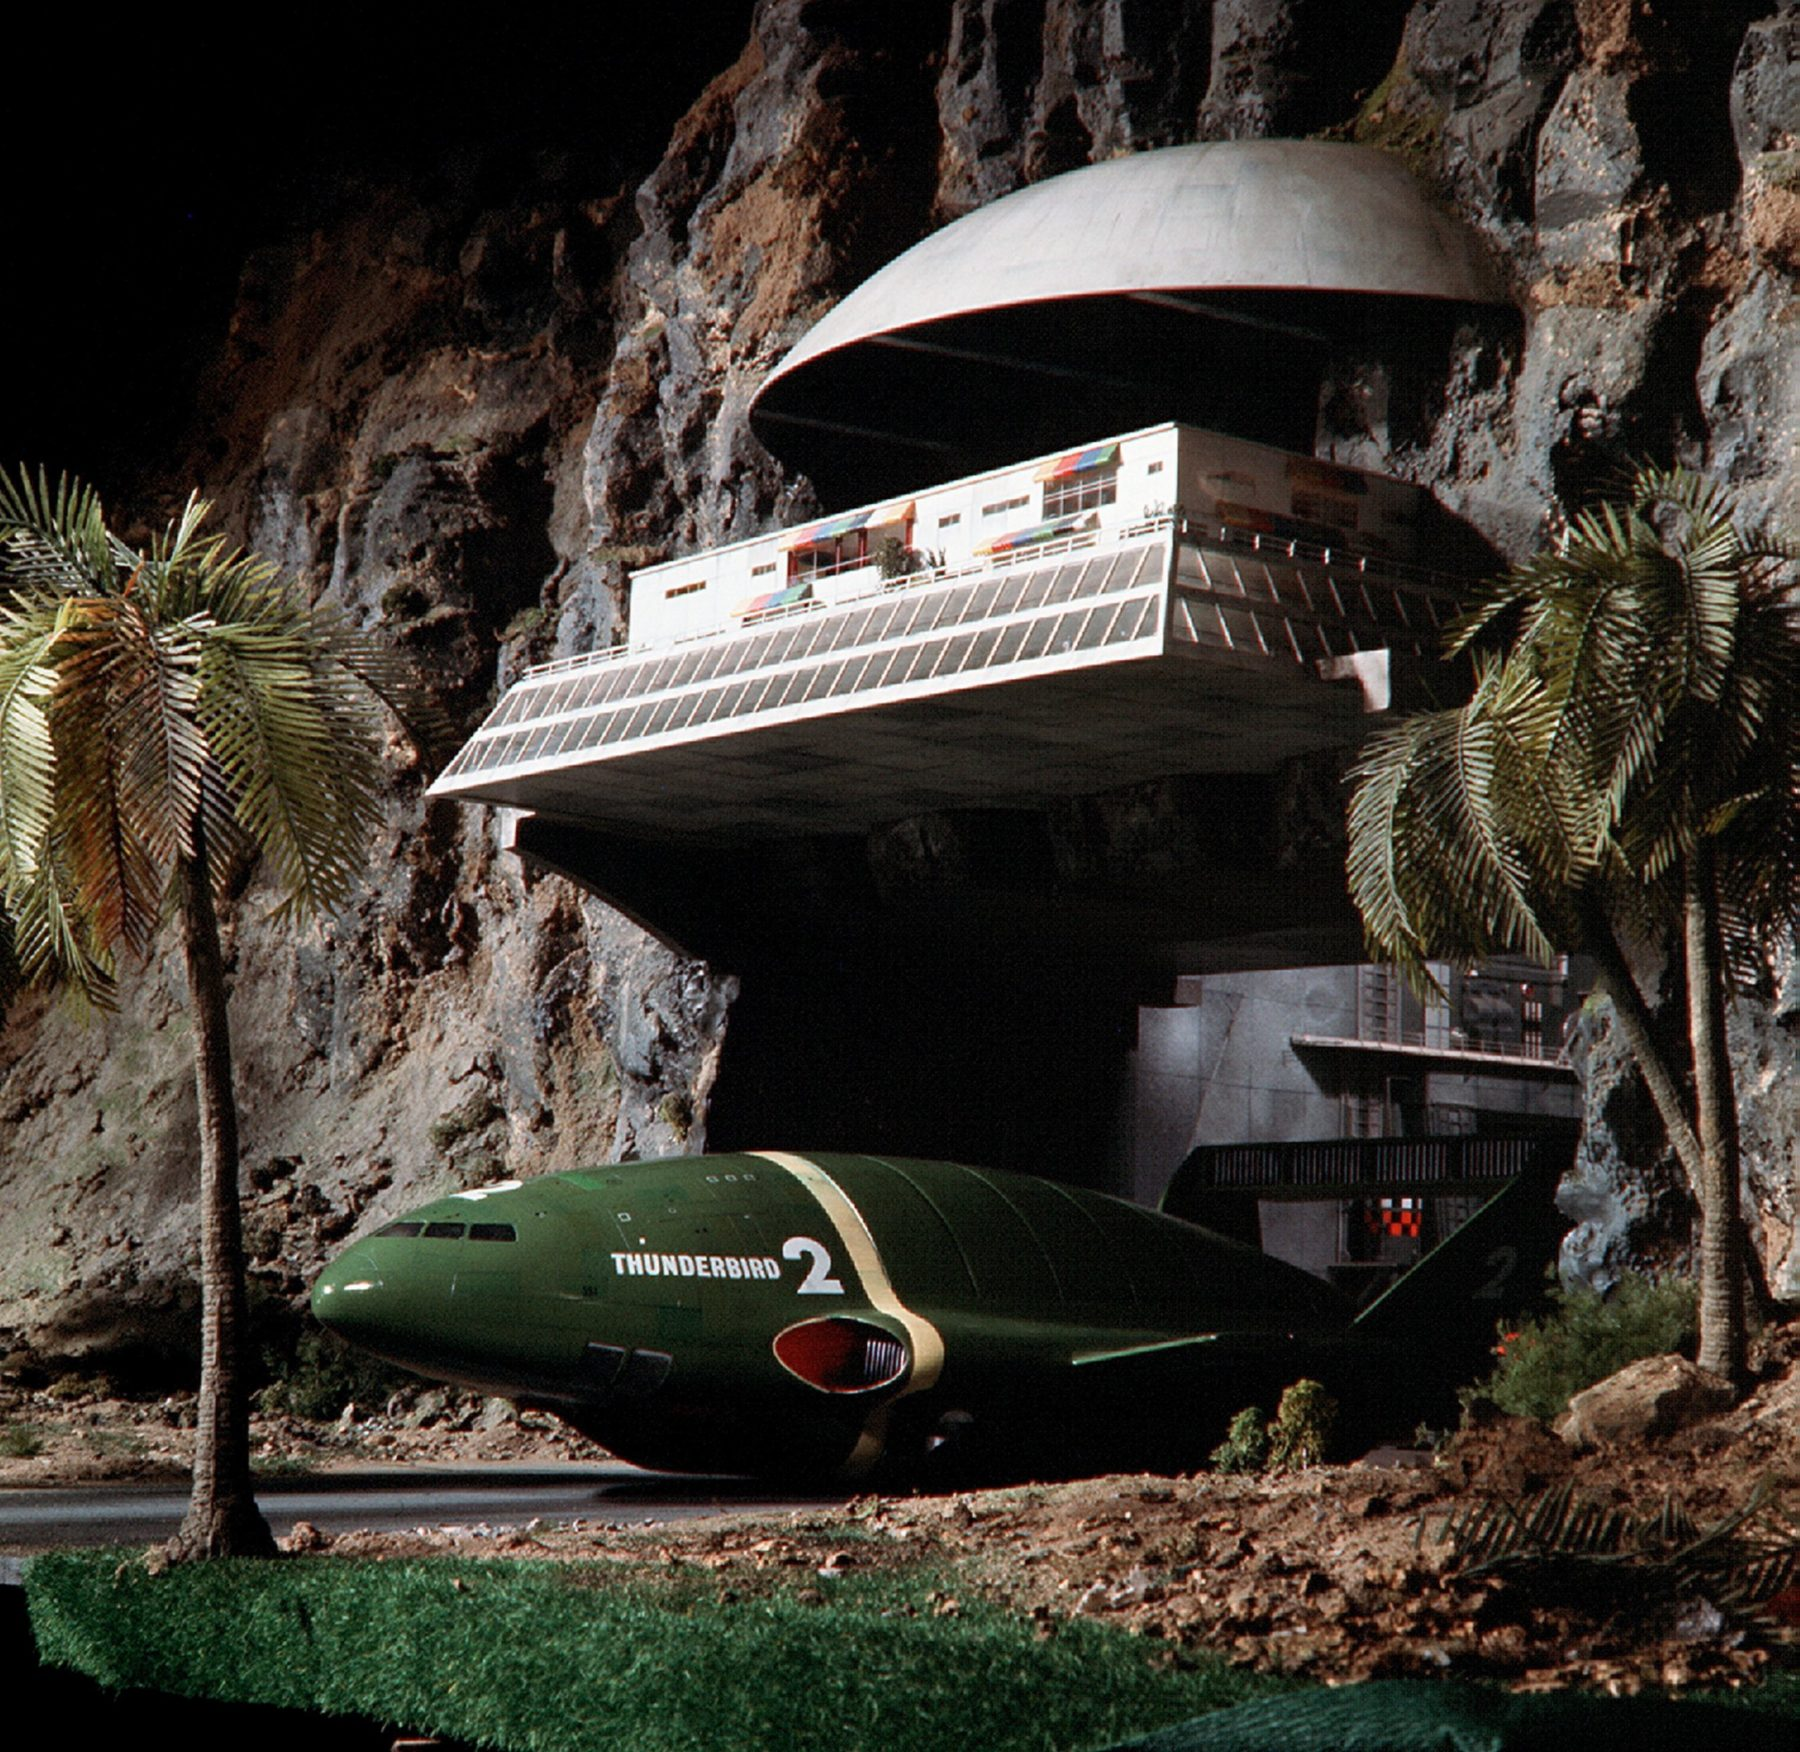 Thunderbirds launches on 30th September quickly becoming one of the most popular British TV series ever produced.